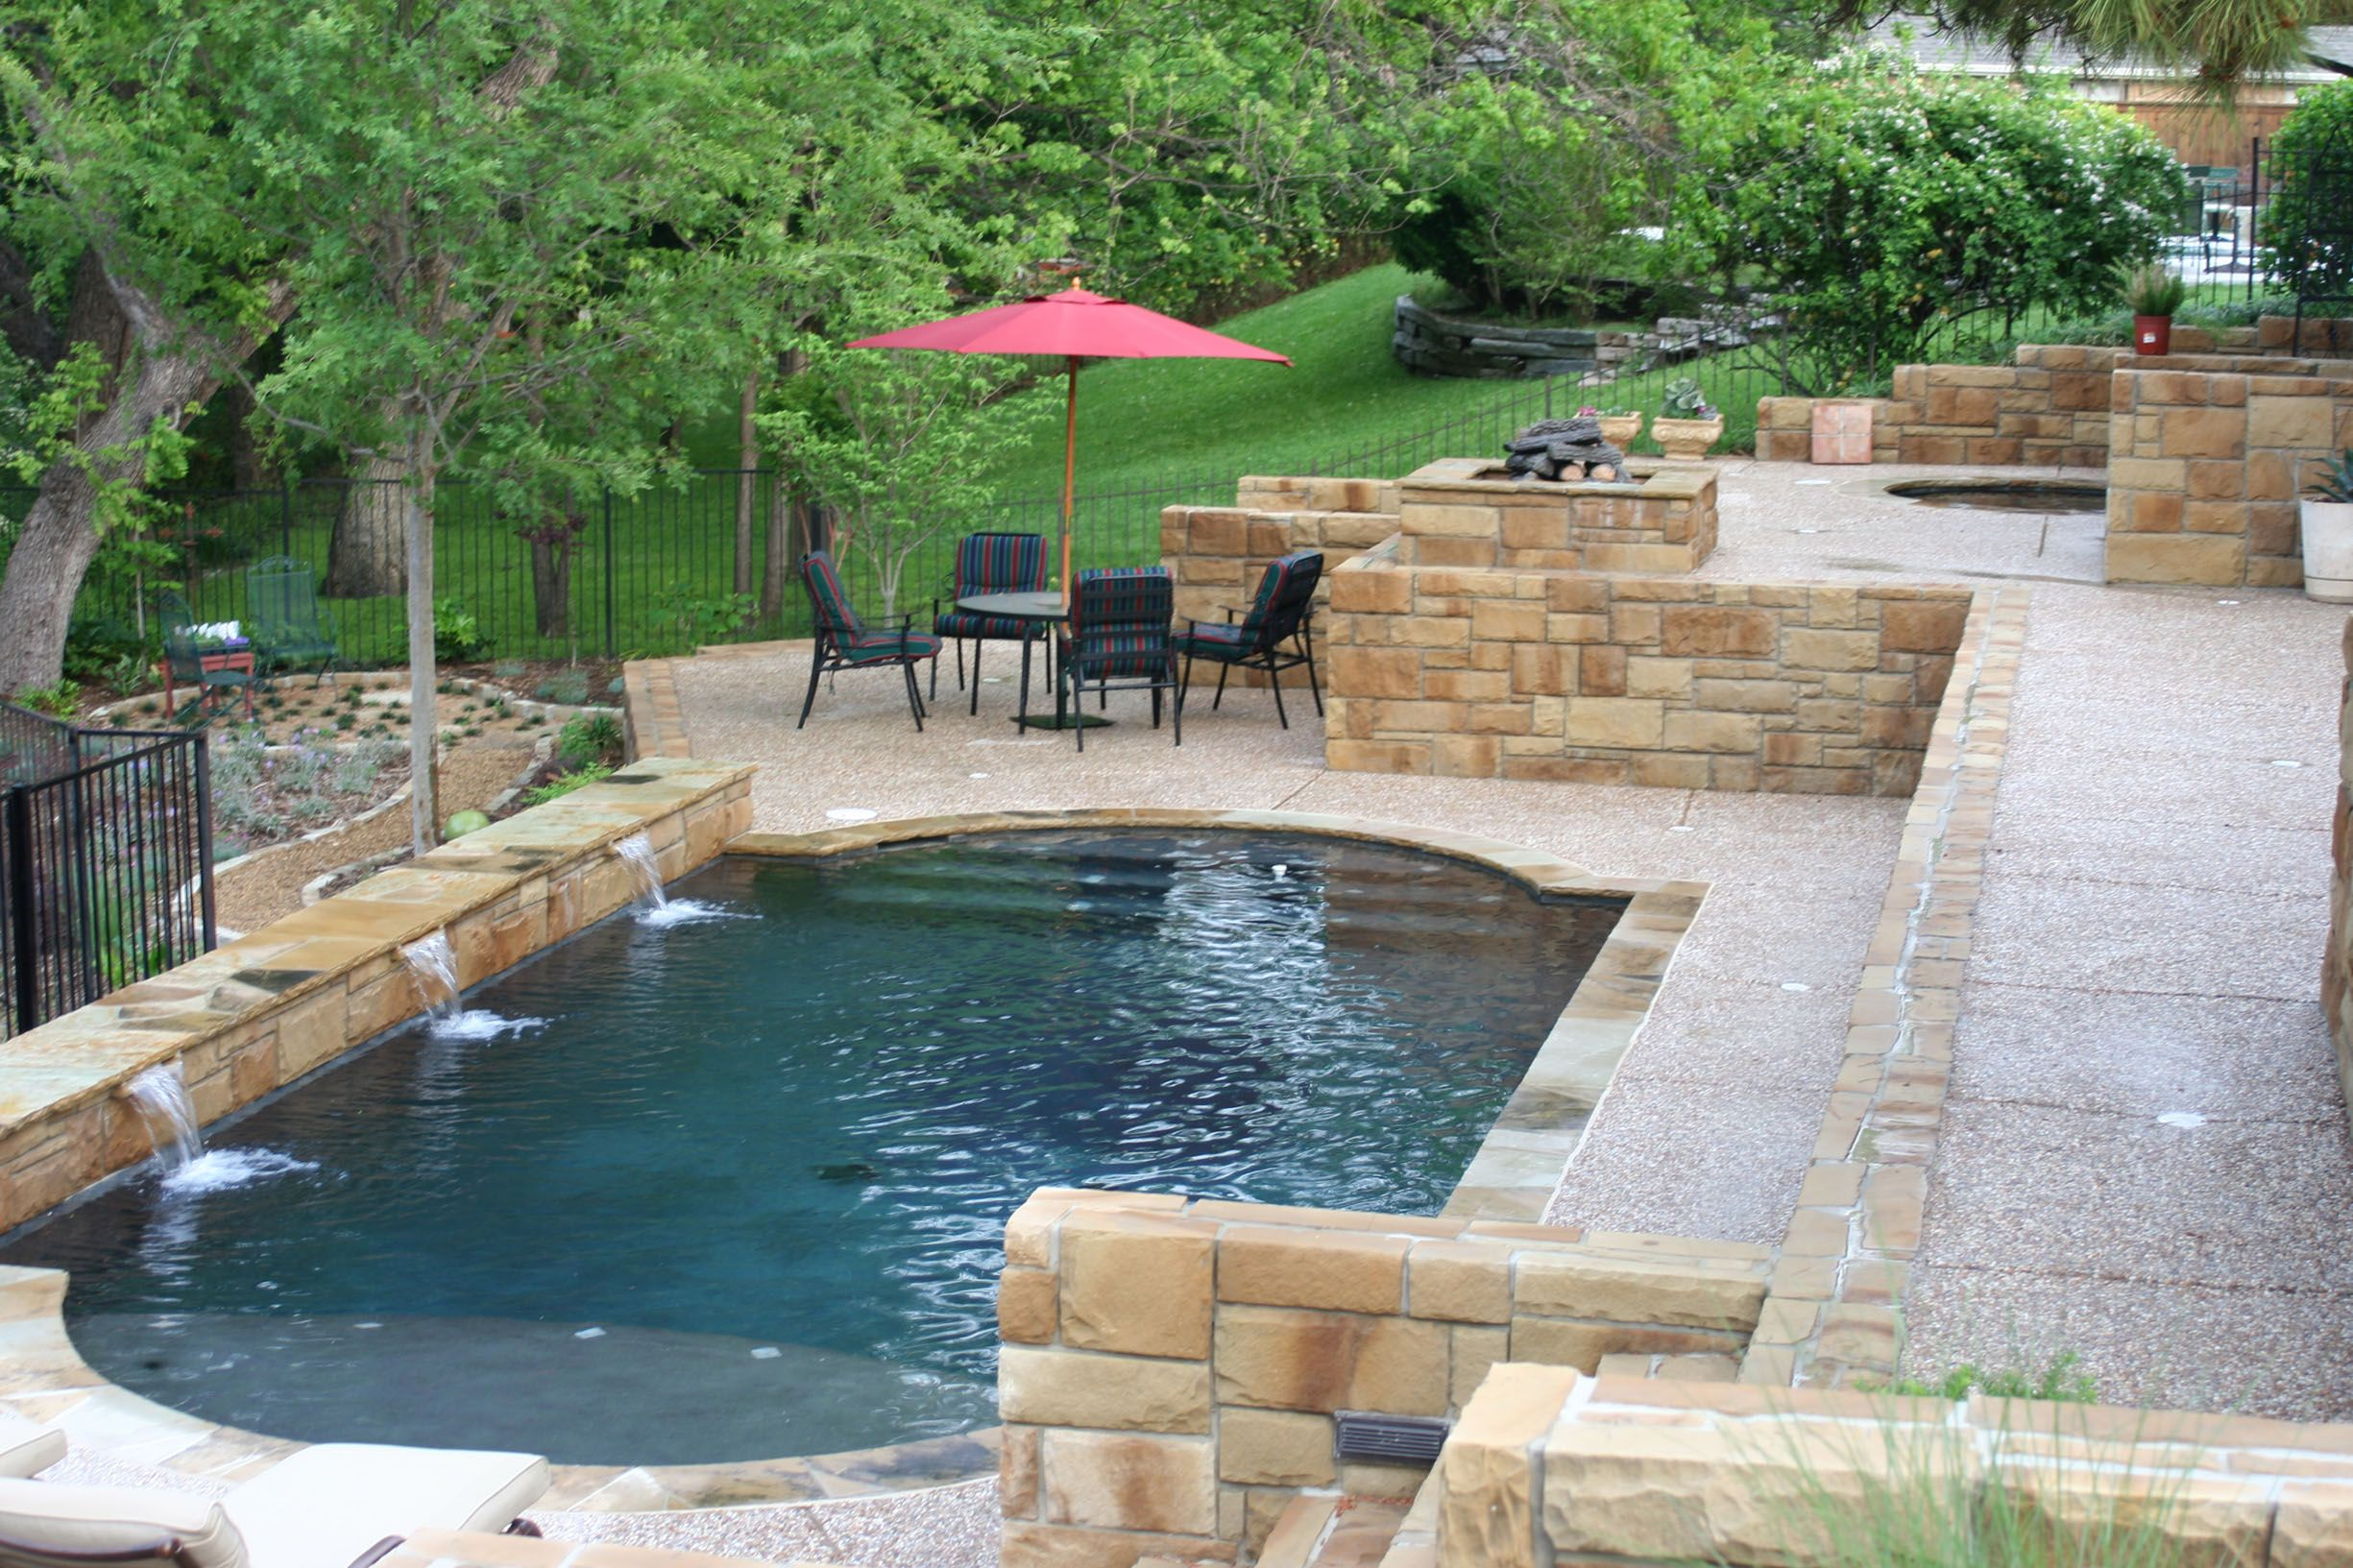 pool ideas for small back yard pool designs for stunning small backyard - Small Pool Design Ideas